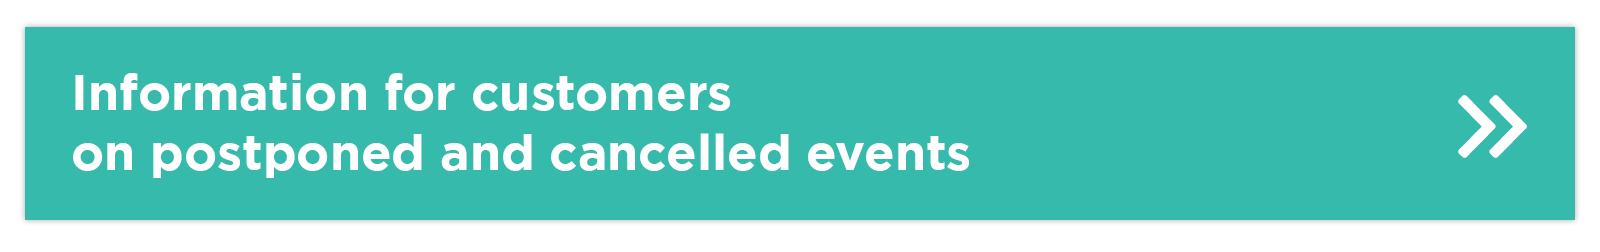 Information for customers on rescheduled and cancelled events